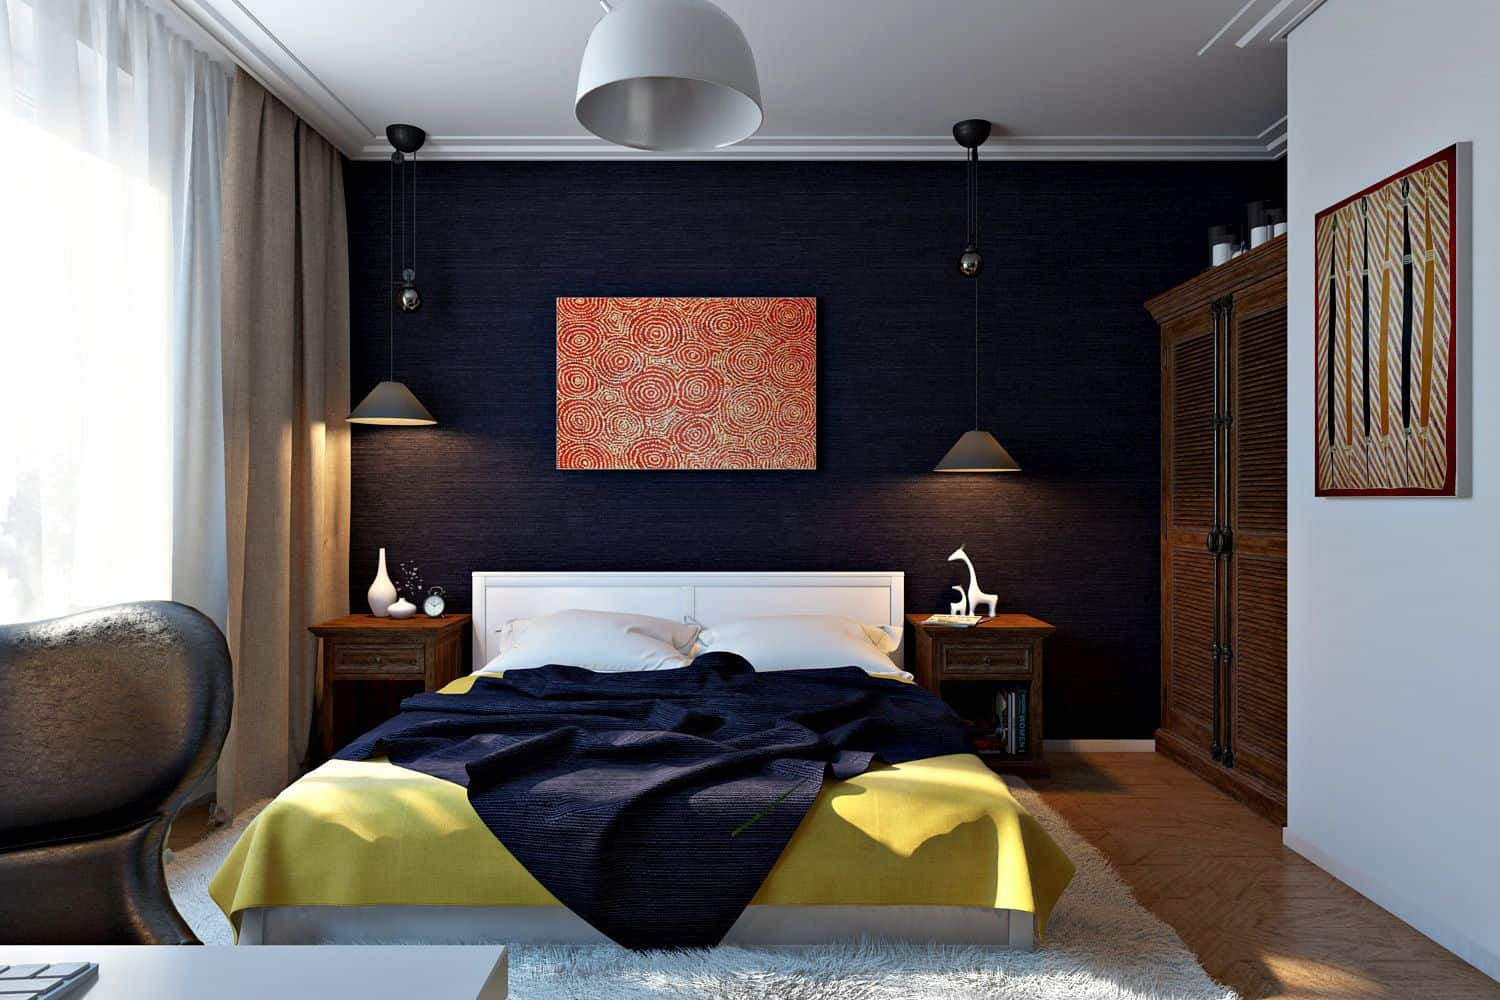 Eggplant color in bedroom wall decoration